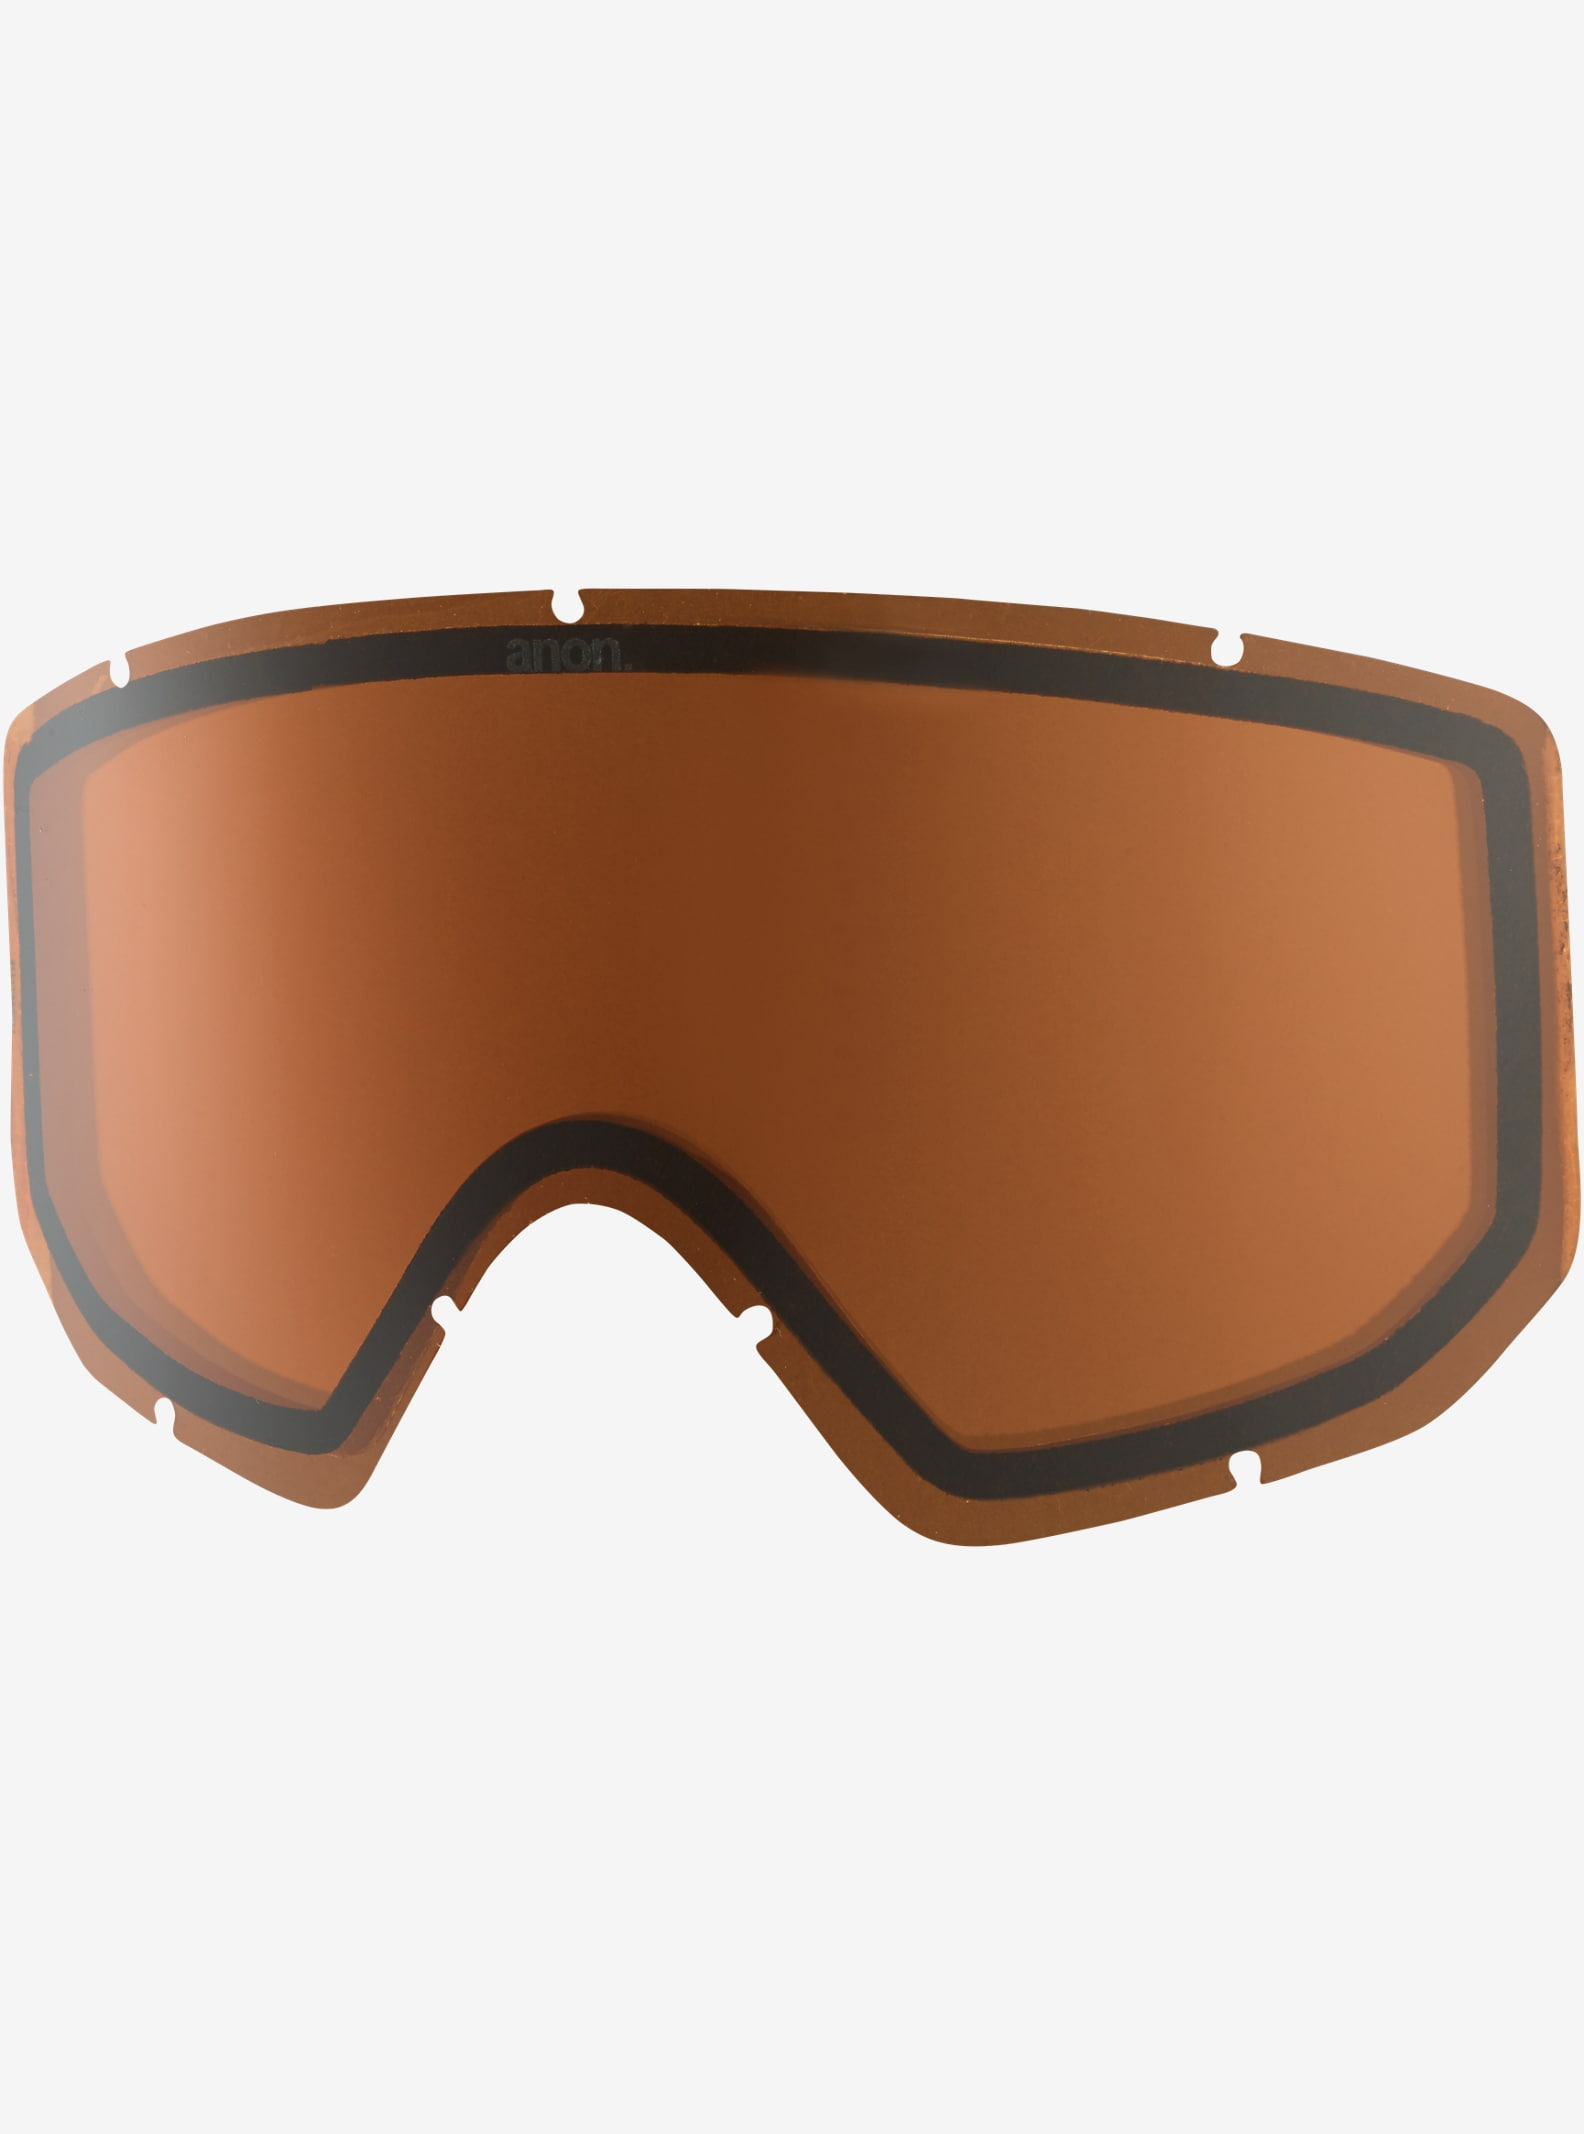 anon. Relapse Jr. Goggle Lens shown in Amber (55% VLT)